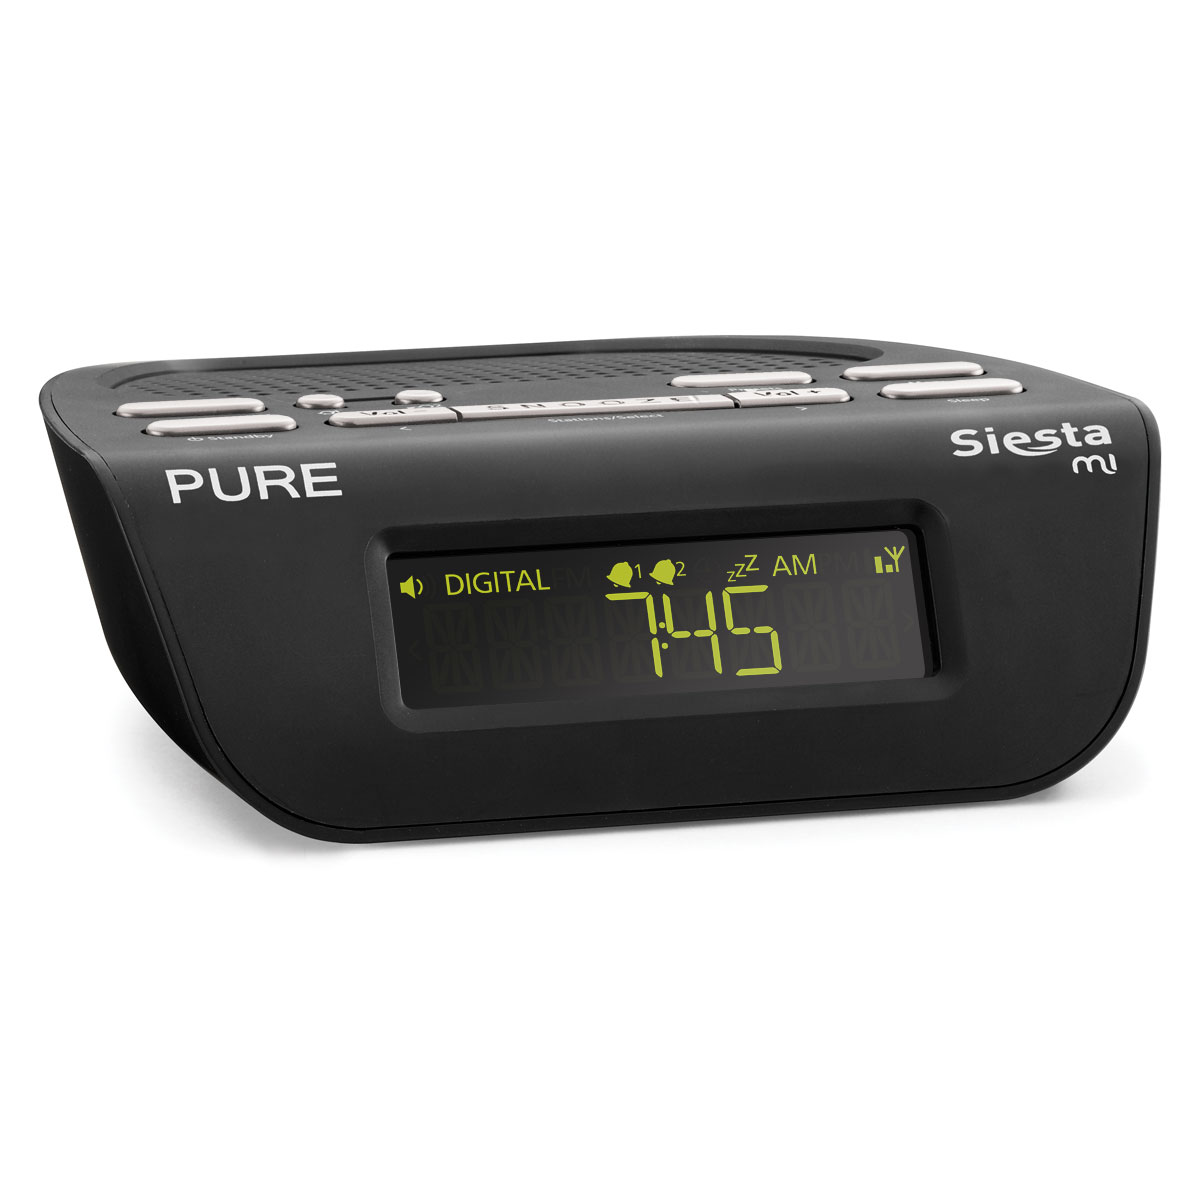 Coffee Maker Philips Senseo Hd7810 likewise Search in addition 351962349260 as well Waterproof Digital Watches For Mens besides Craghoppers Men S T Shirts. on philips clock radio cd player